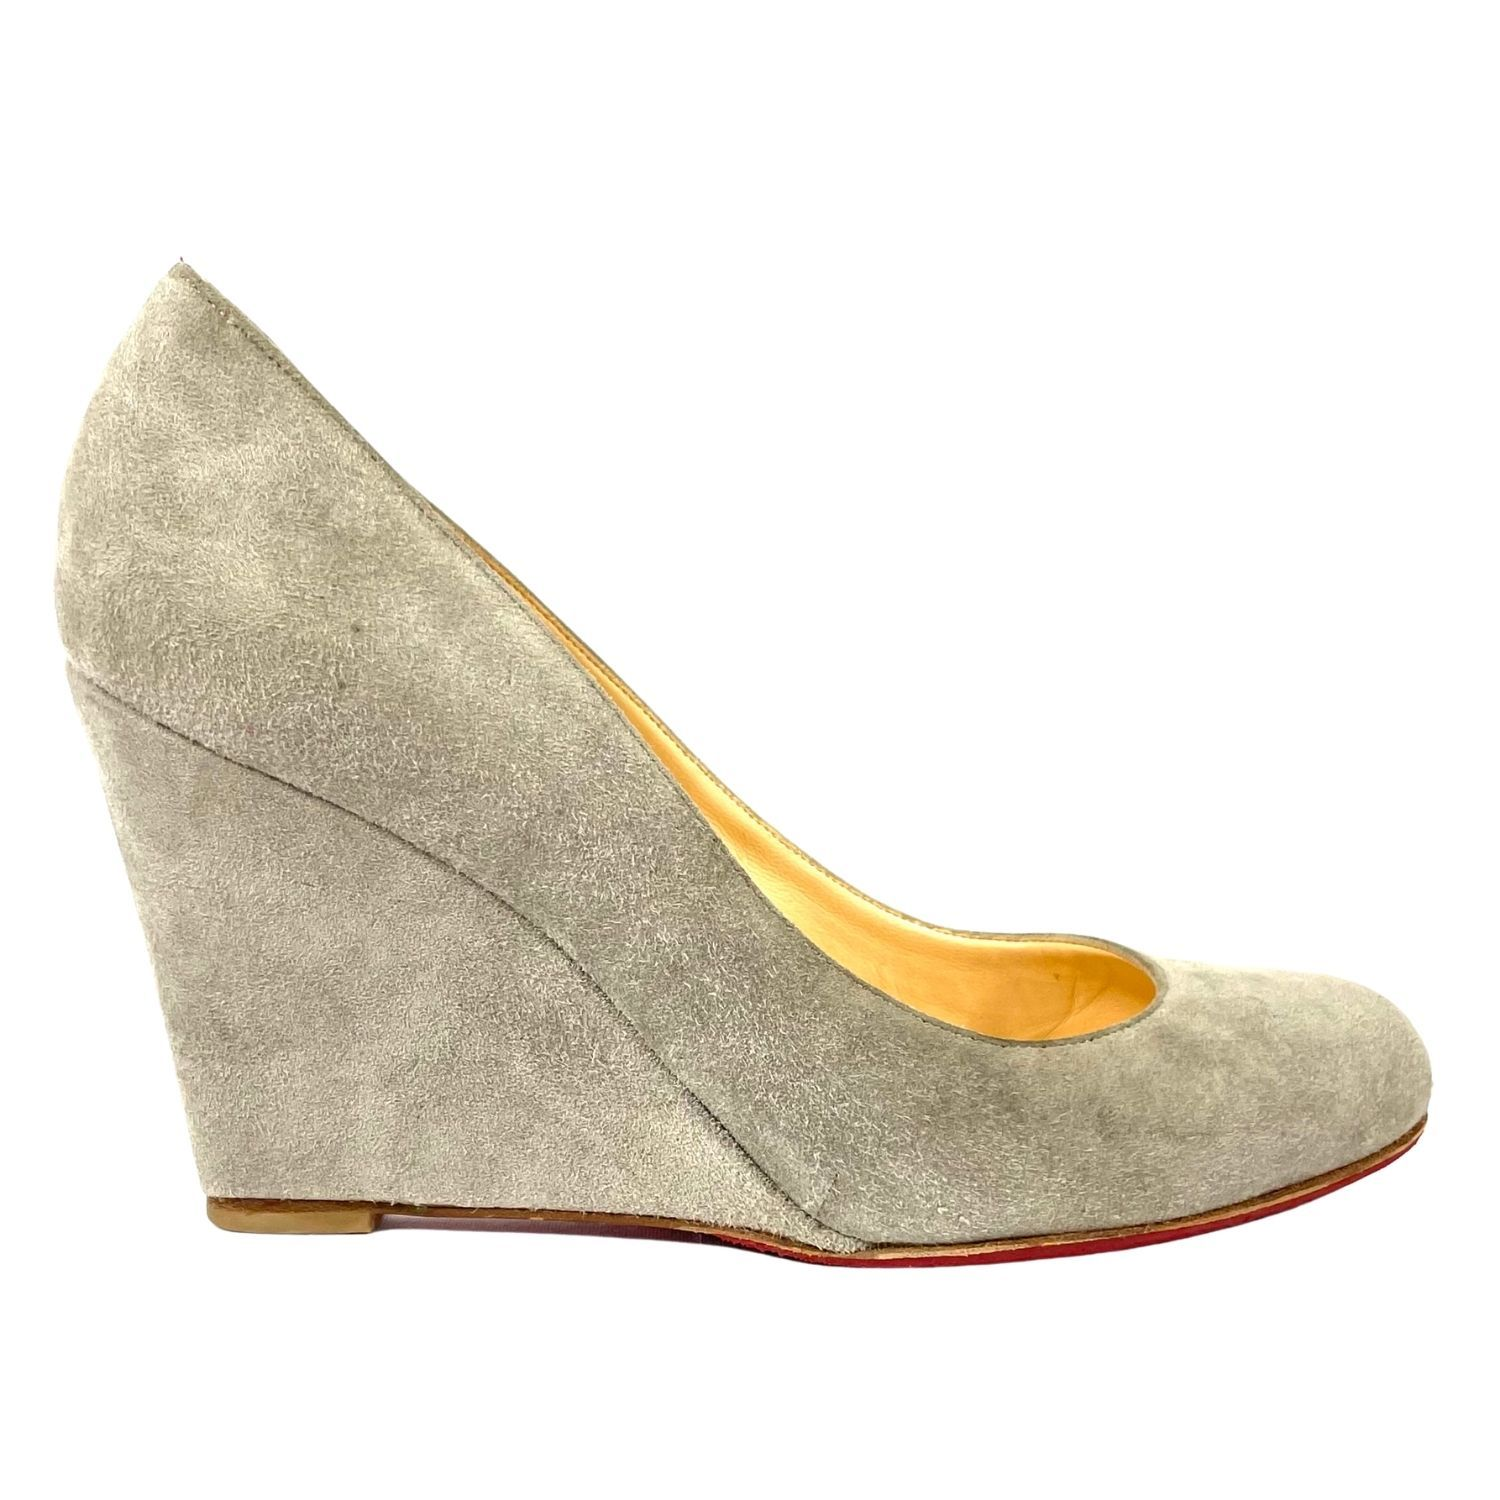 Sapato Louboutin Suede Cinza